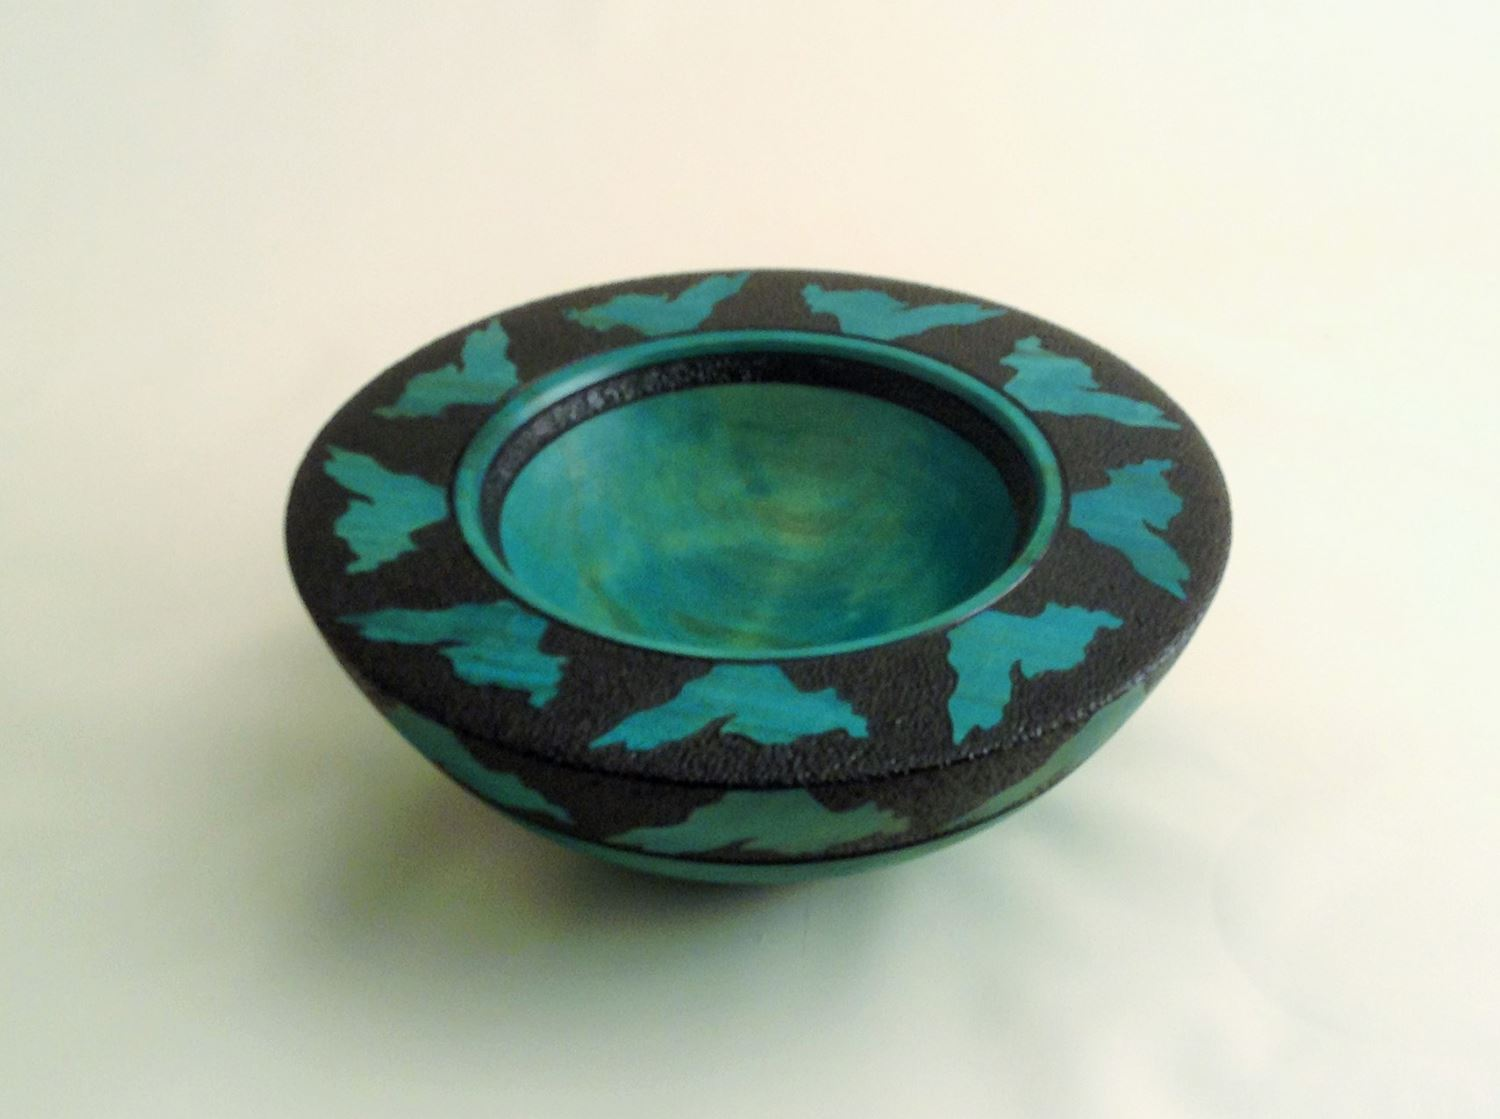 This bowl by Robb Glibbery is one of the works on exhibit at the Duluth Art Institute.